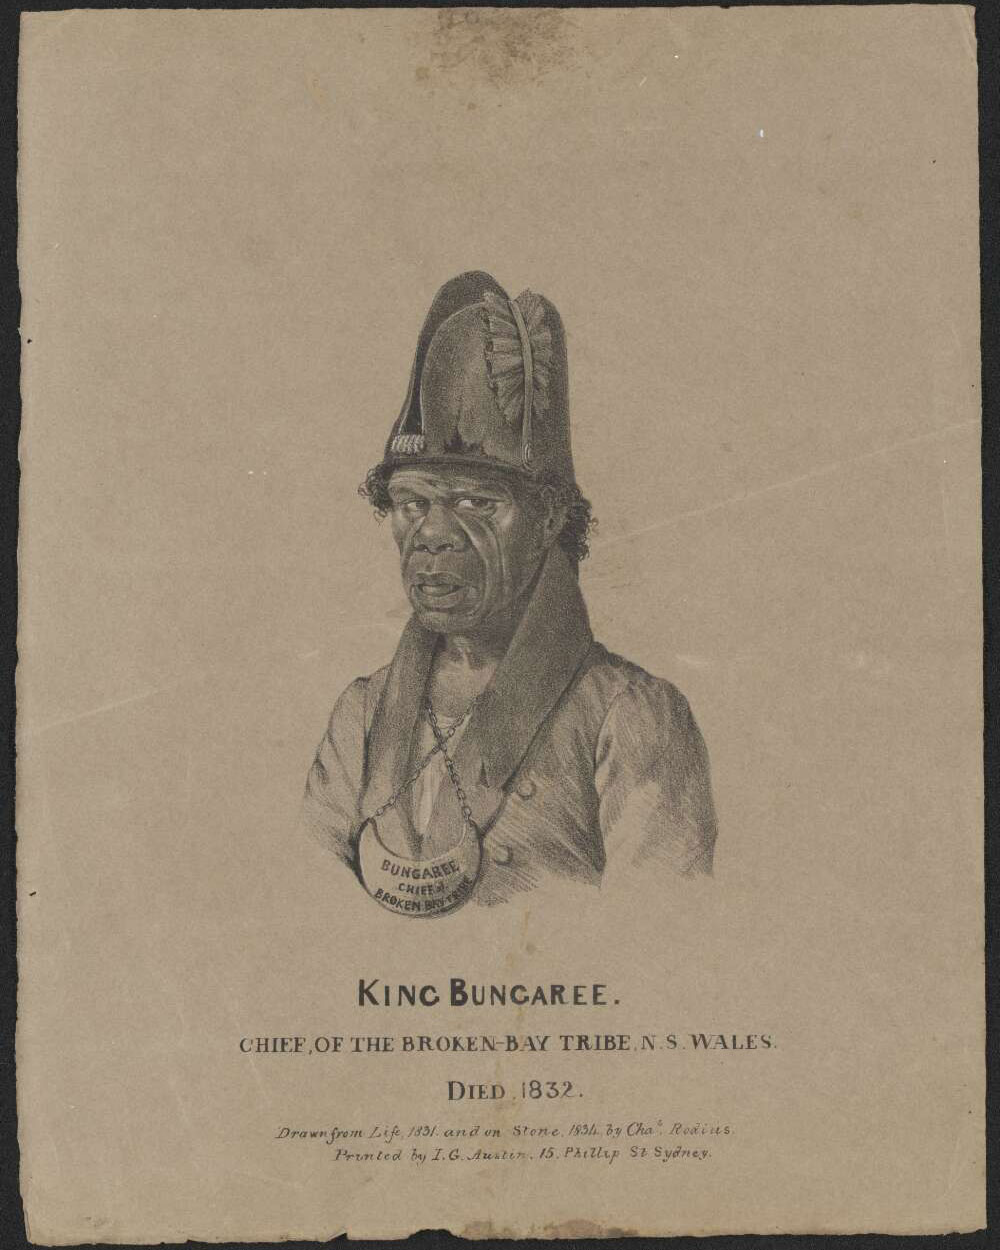 Coloured lithograph of a man in nineteenth century clothing and the title 'King Bungaree' beneath.